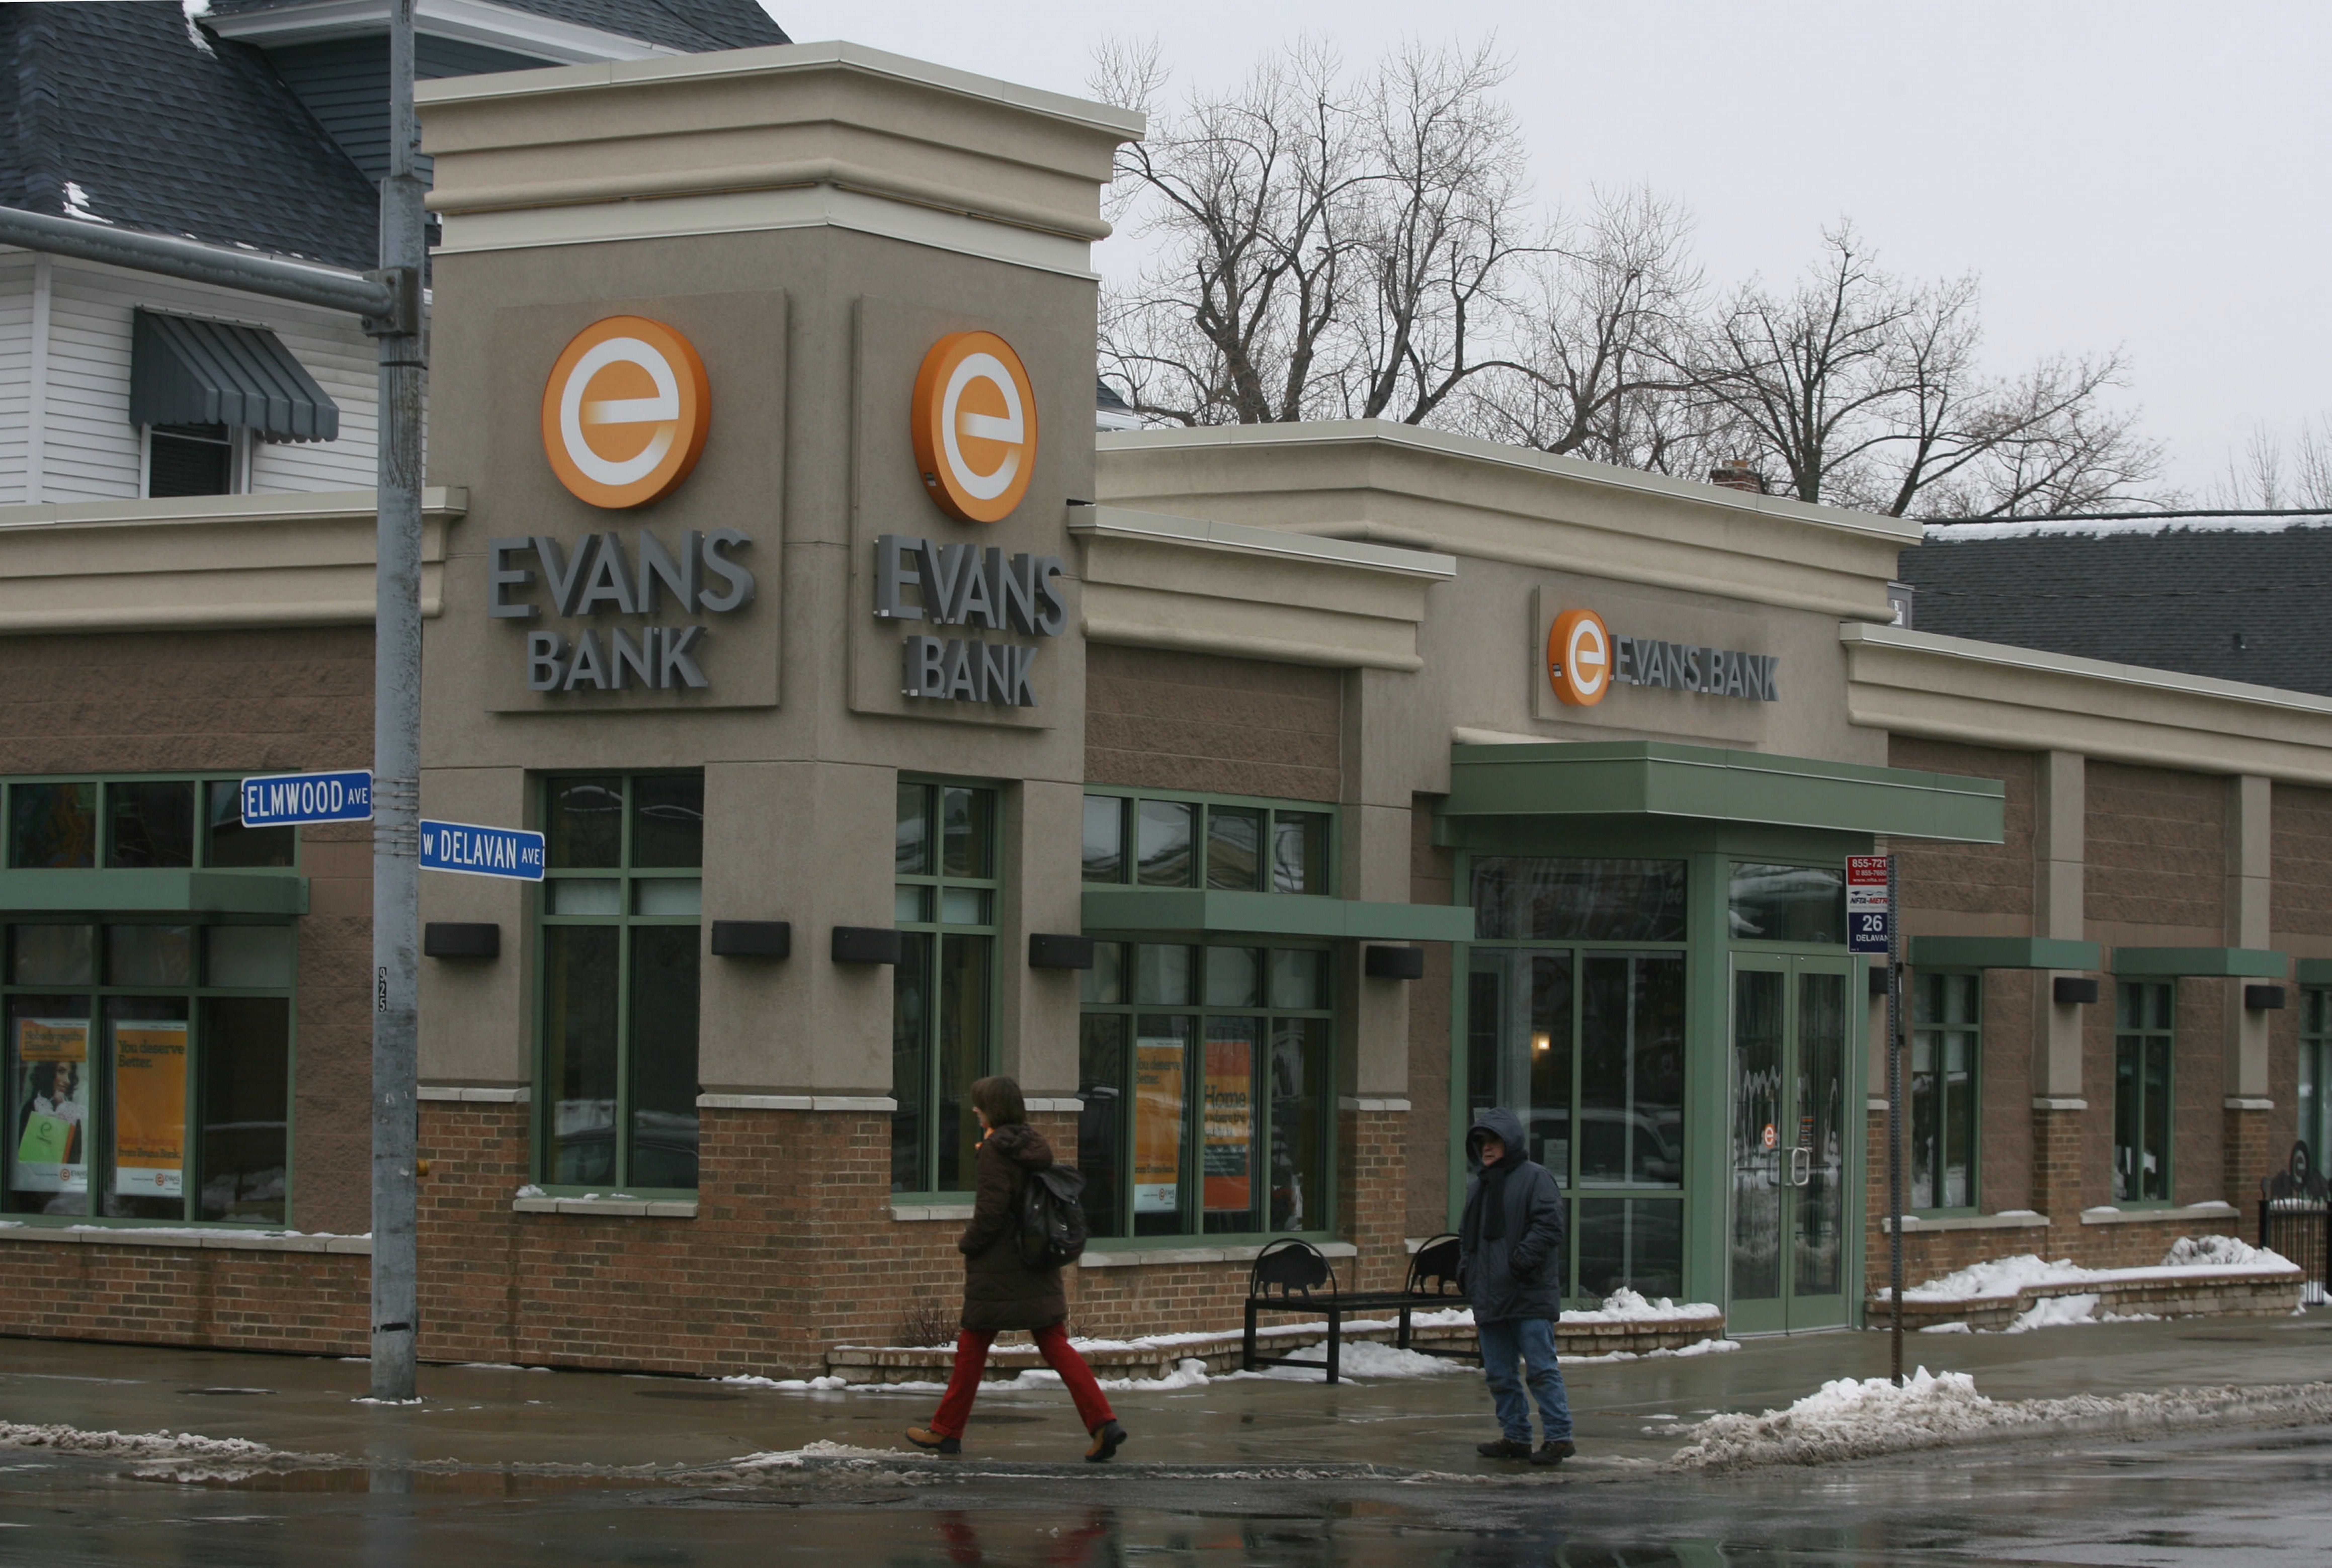 {FOR BUSINESS/STORY}  Evans Bank, at the corner of Elmwood and W. Delevan Sts. in Buffalo, Thursday December 29th, 2009.  {Photo by Charles Lewis/Buffalo News}